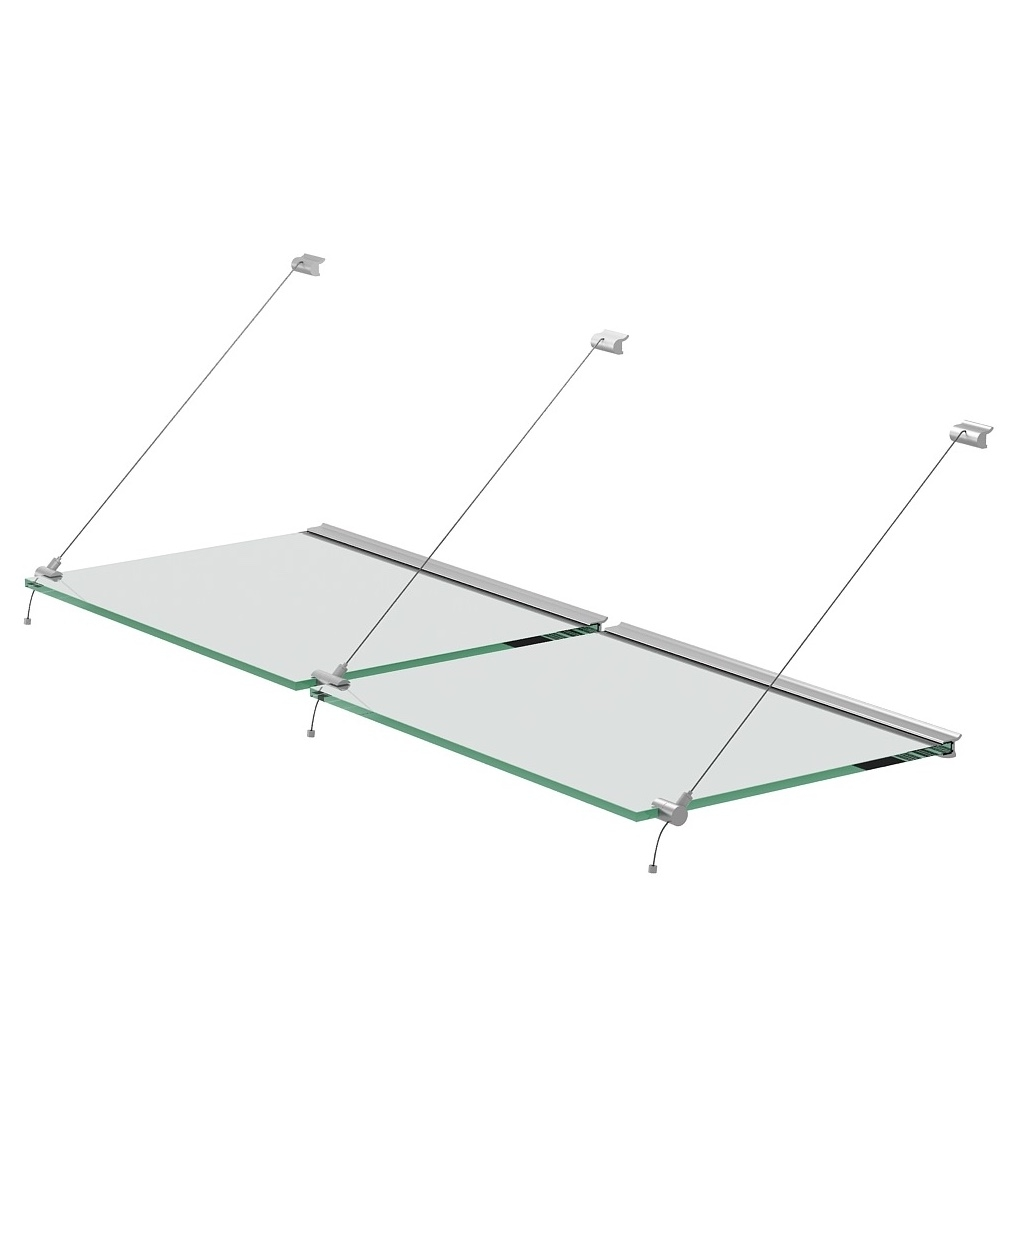 Suspended Glass Shelving Systems Design Modern Shelf Storage And In Wire Suspended Glass Shelves (#11 of 12)